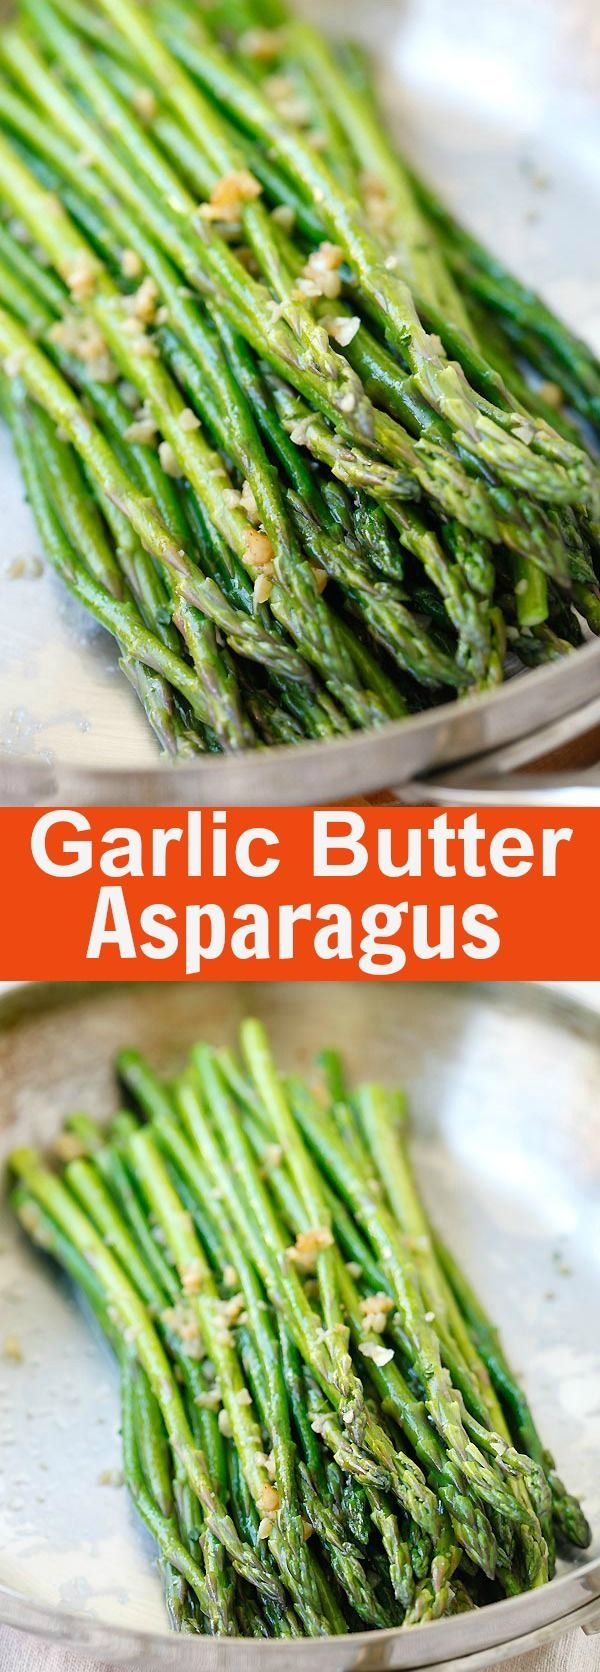 Garlic Butter Sauteed Asparagus – the easiest & healthiest asparagus recipe ever, takes only 10 mins to prep. Quick, fresh, and delicious